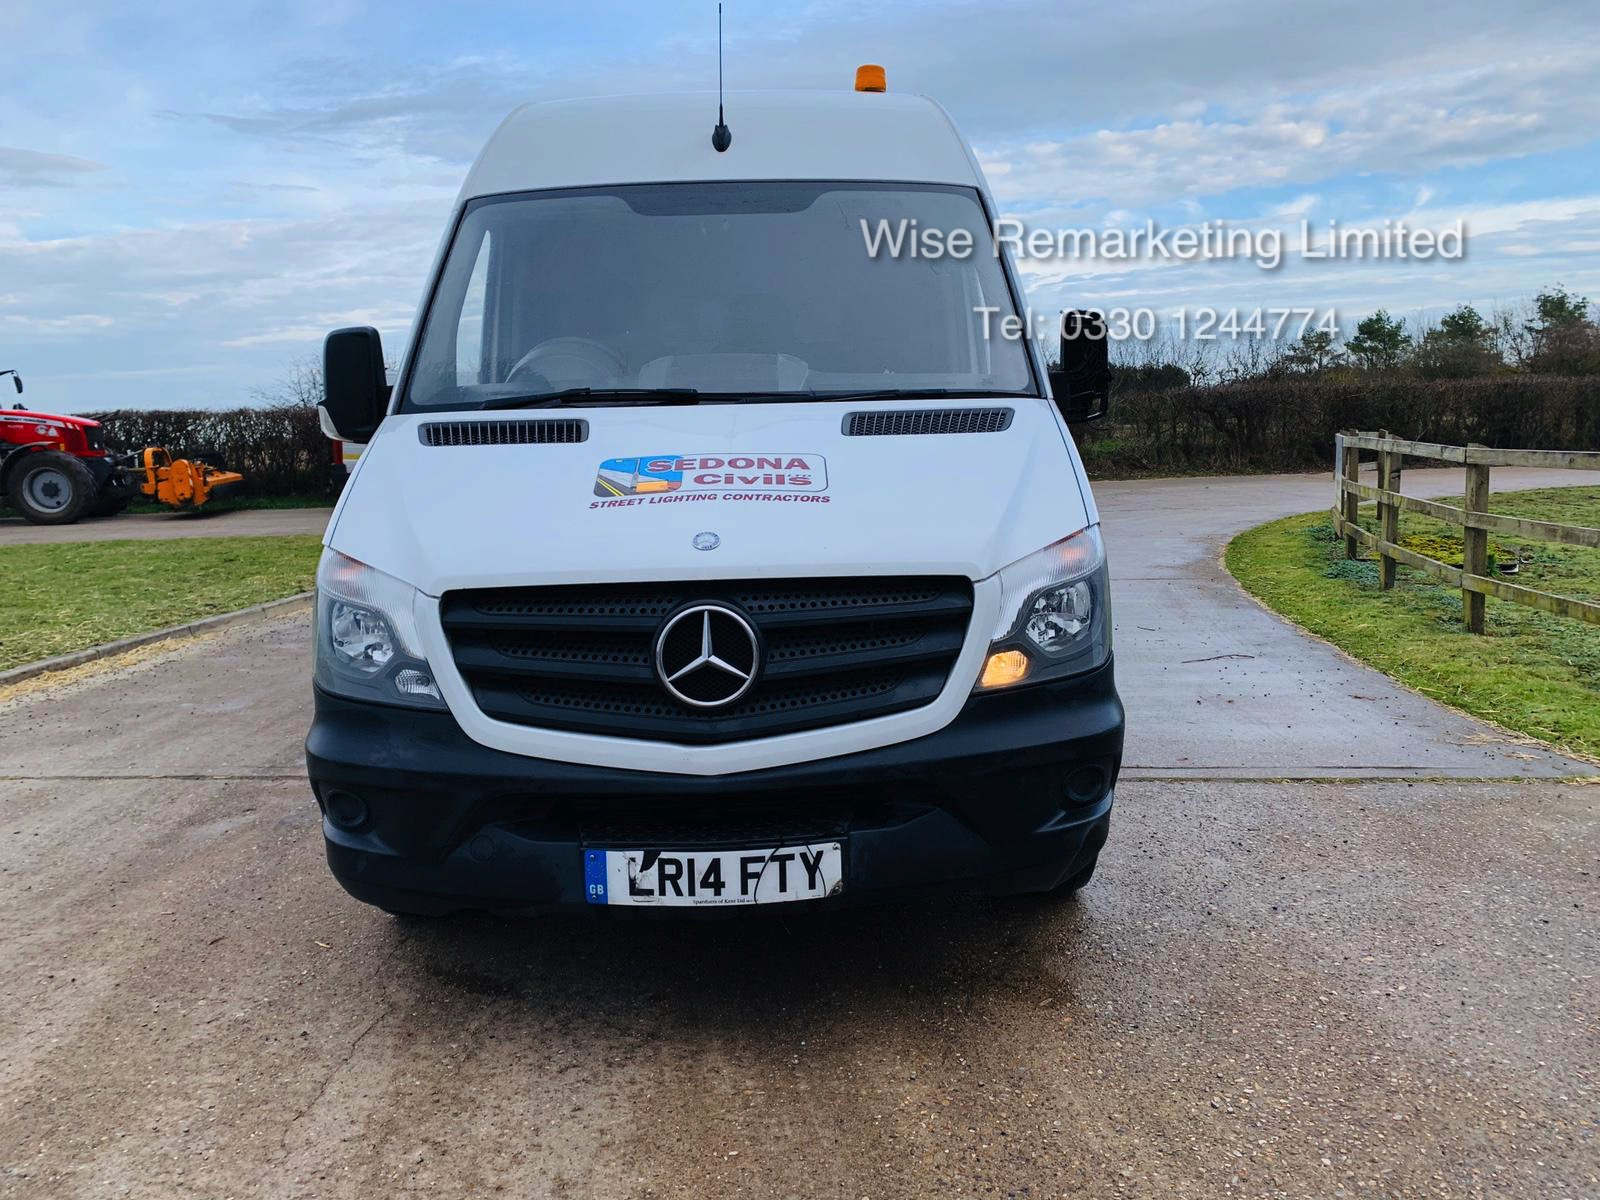 Mercedes Sprinter 313 2.1 CDI - 2014 14 Reg - 6 Speed - Ply Lined - Company Owned - Image 7 of 18